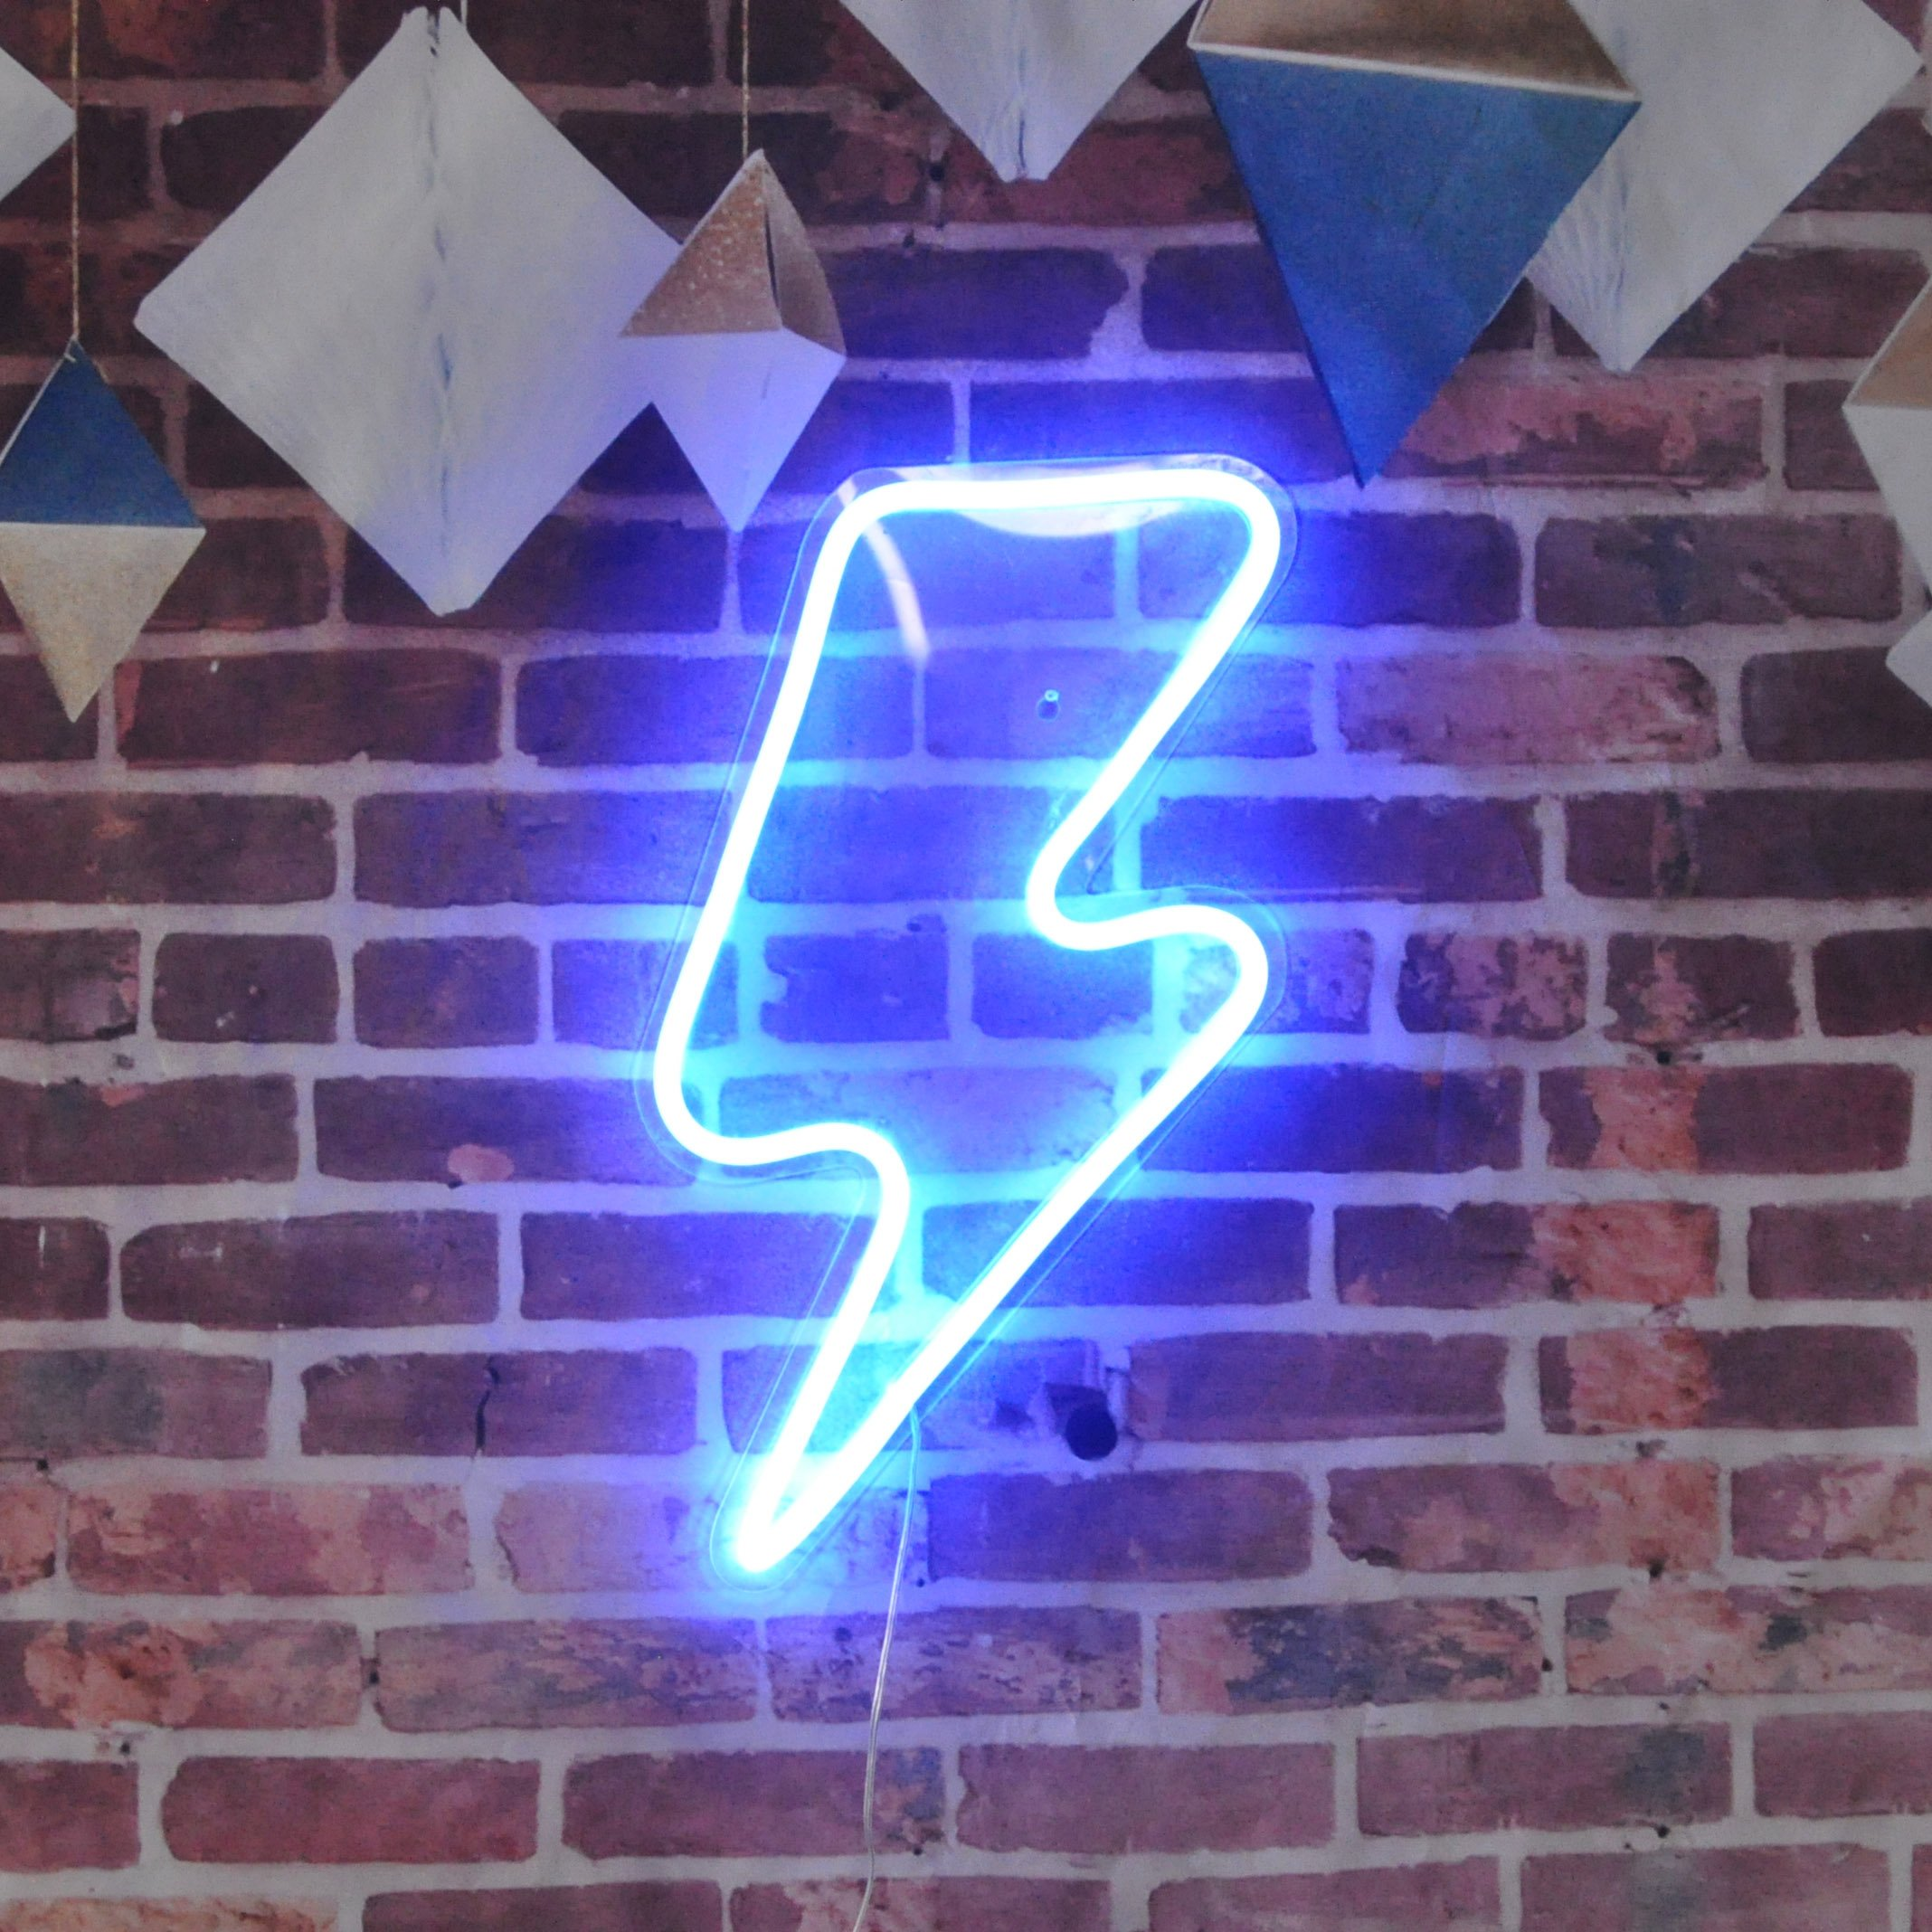 Lightning Bolt Neon Sign Remote Control Lightning LED Neon Signs Big Size Handmade Visual Artwork Home Wall Decor Light For Kids Room Designed By Vasten (Blue)